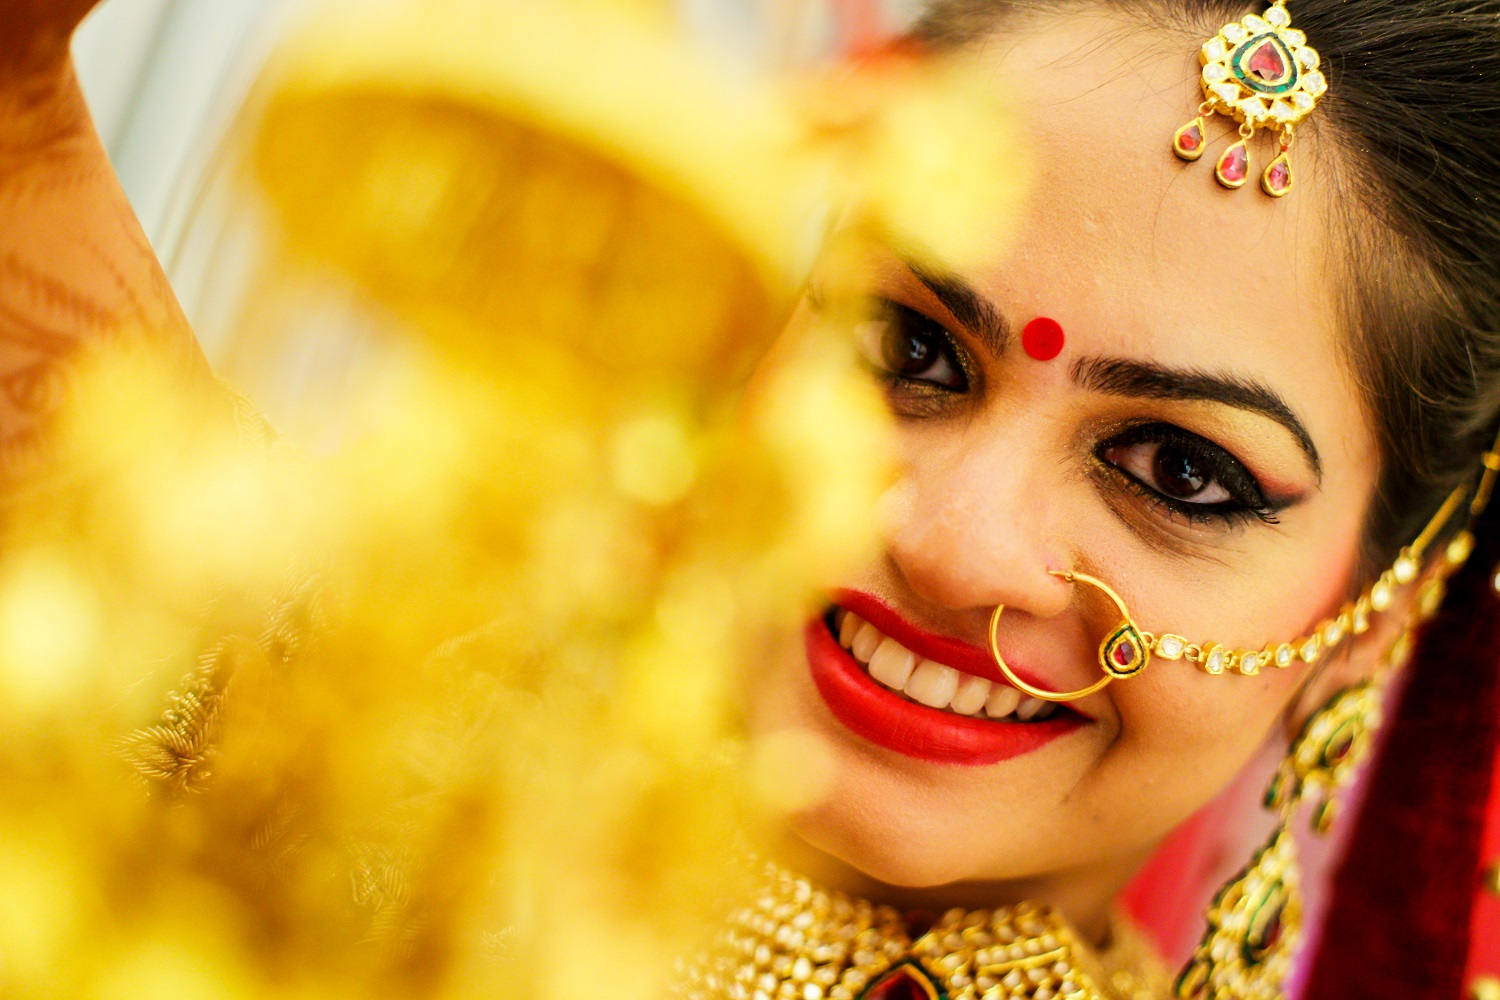 Megha gupta wedding pictures The origin of Snakes and Ladders - I See India